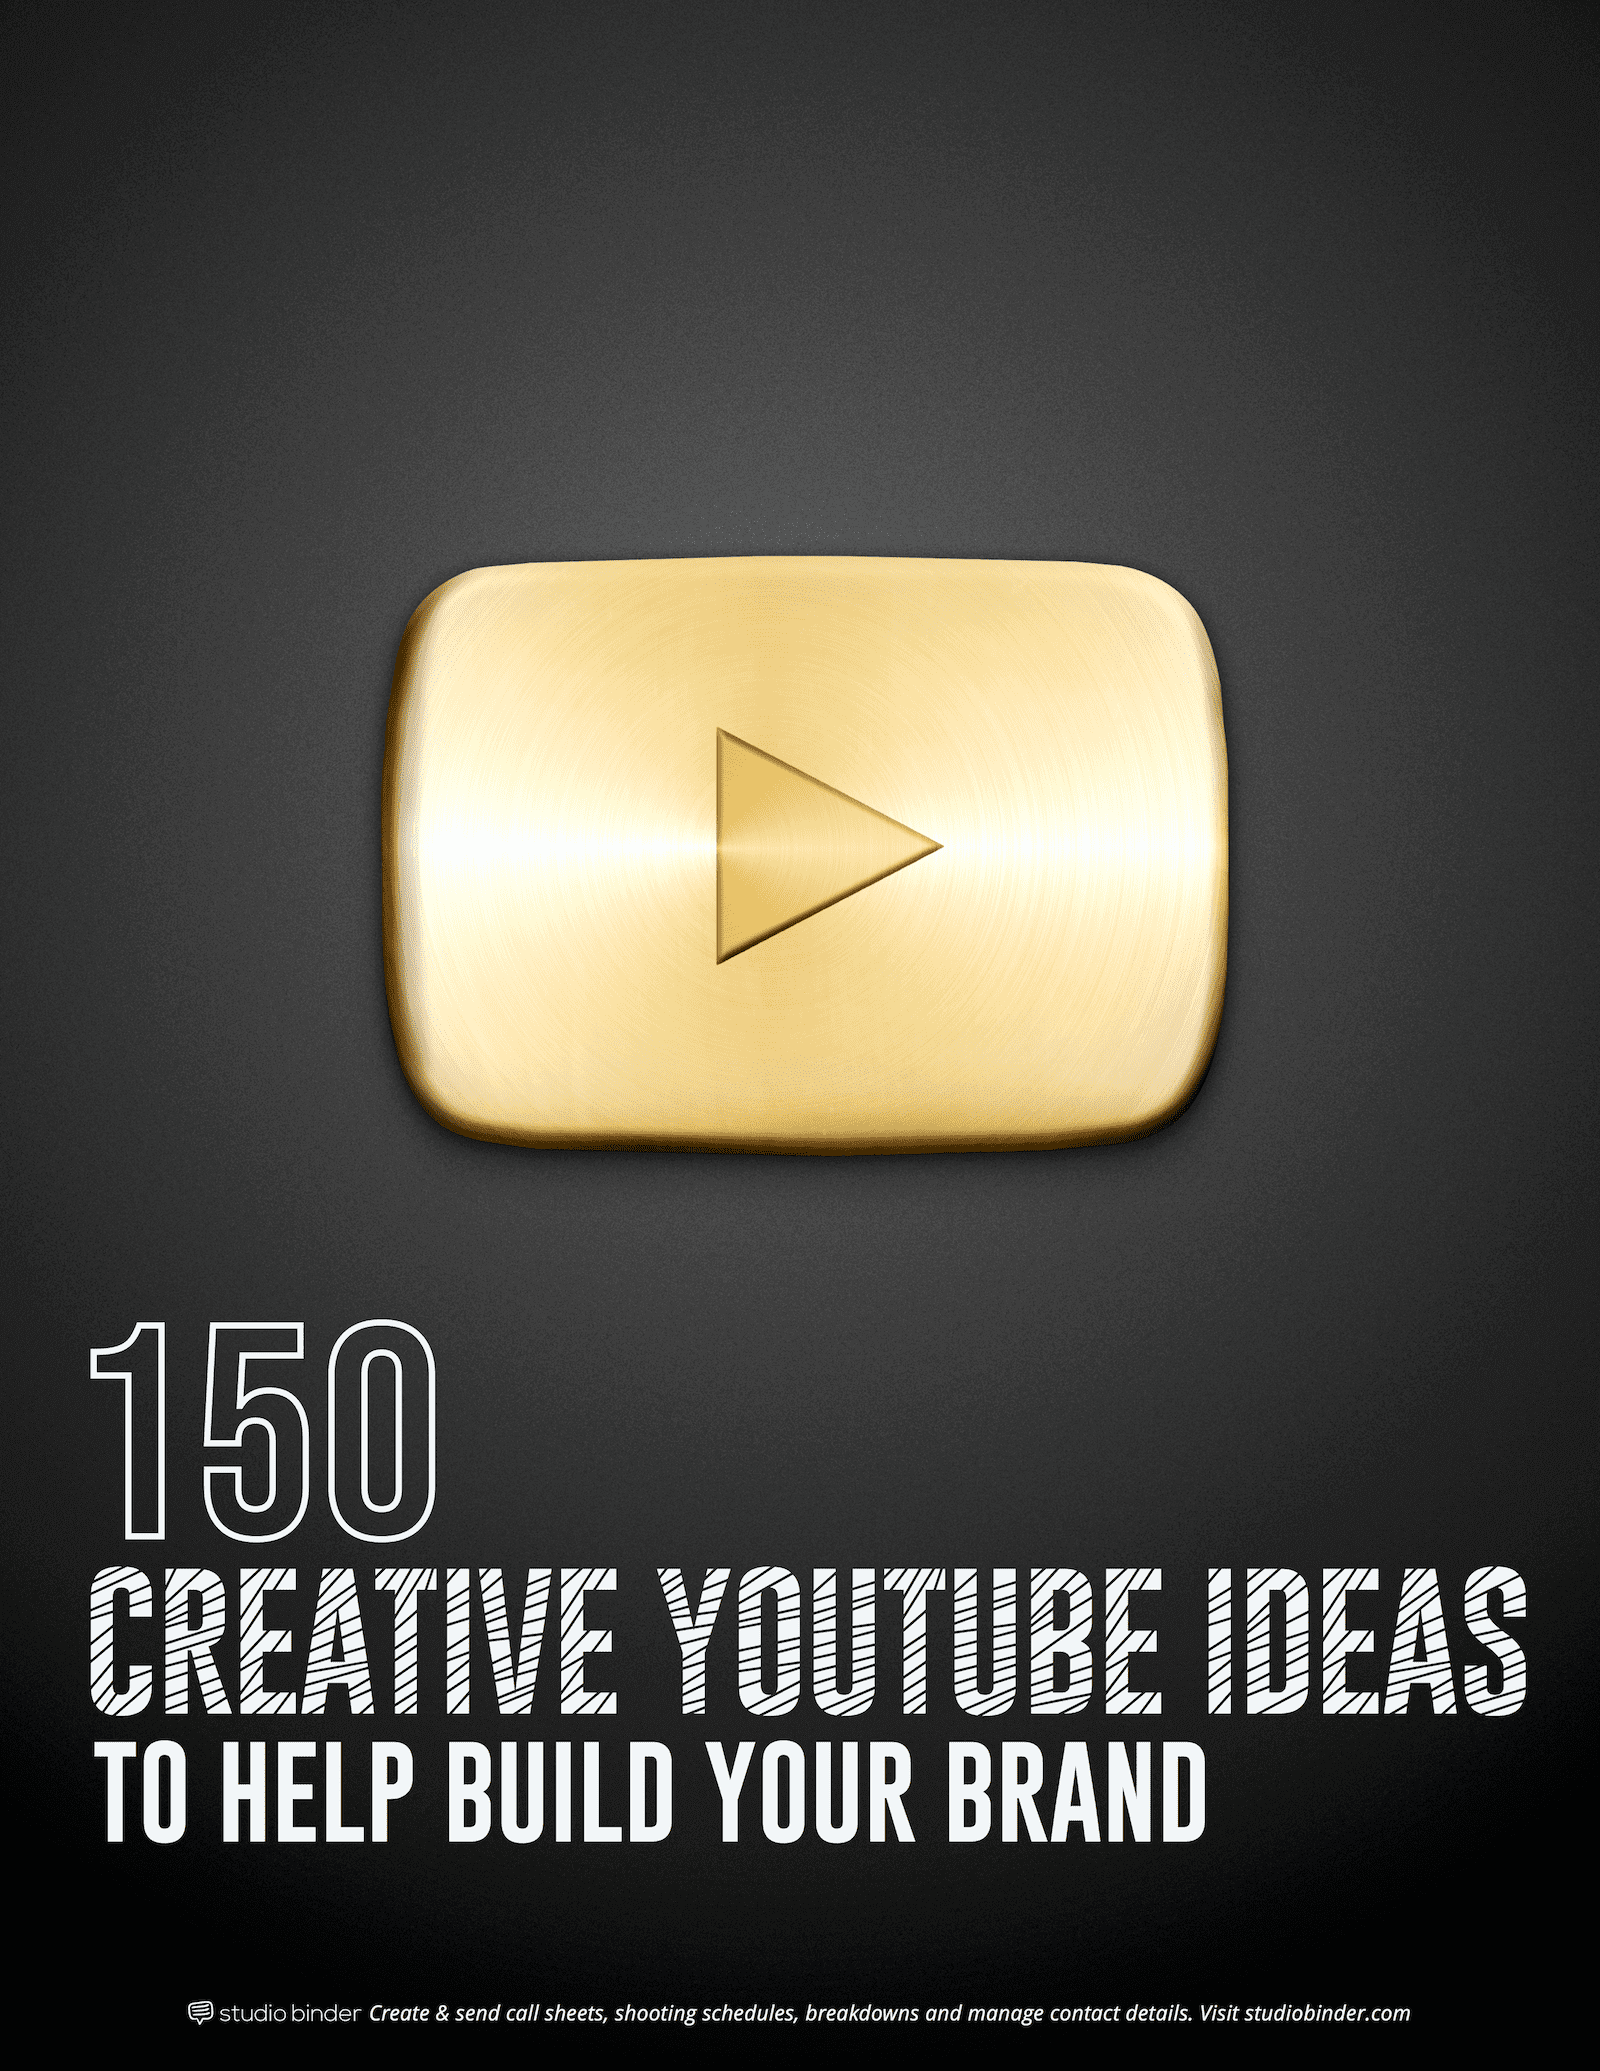 150 creative youtube video ideas to try free channel for Good url ideas